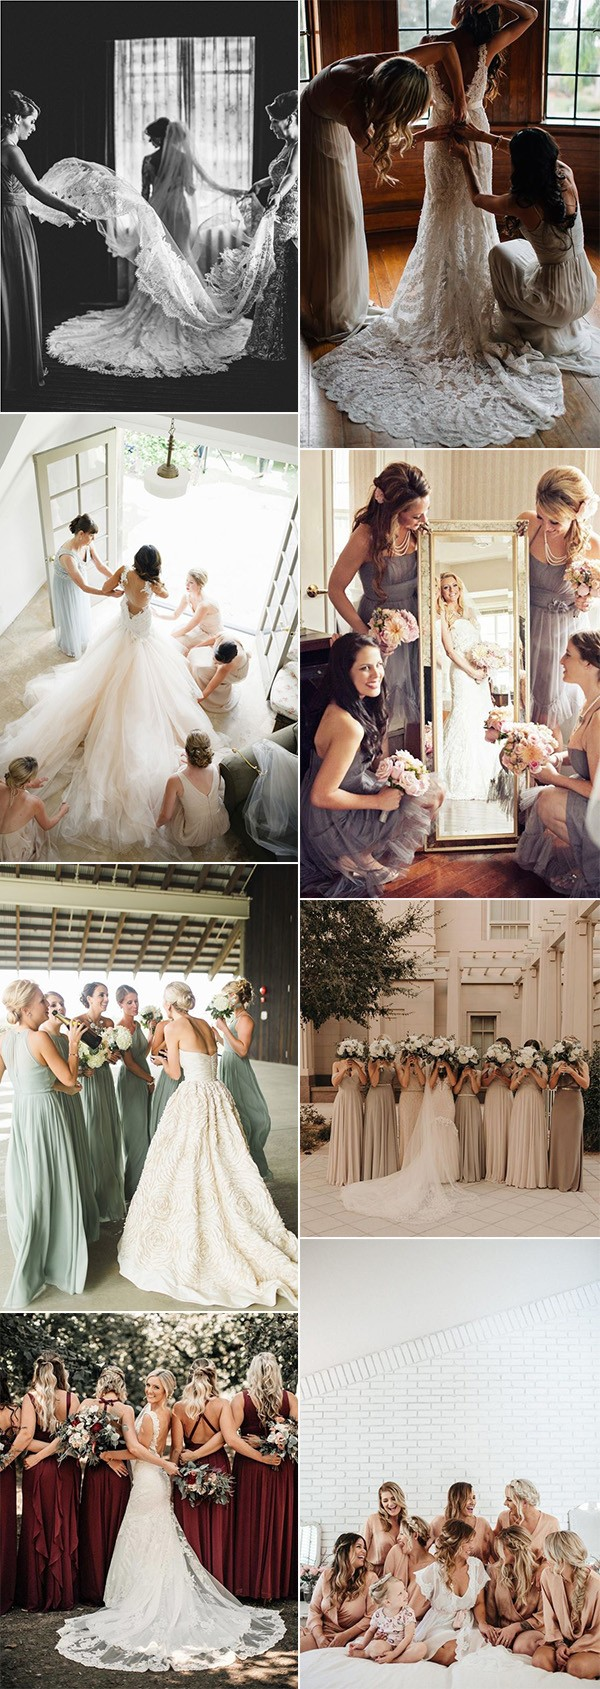 wedding photo ideas with your bridesmaids for 2019